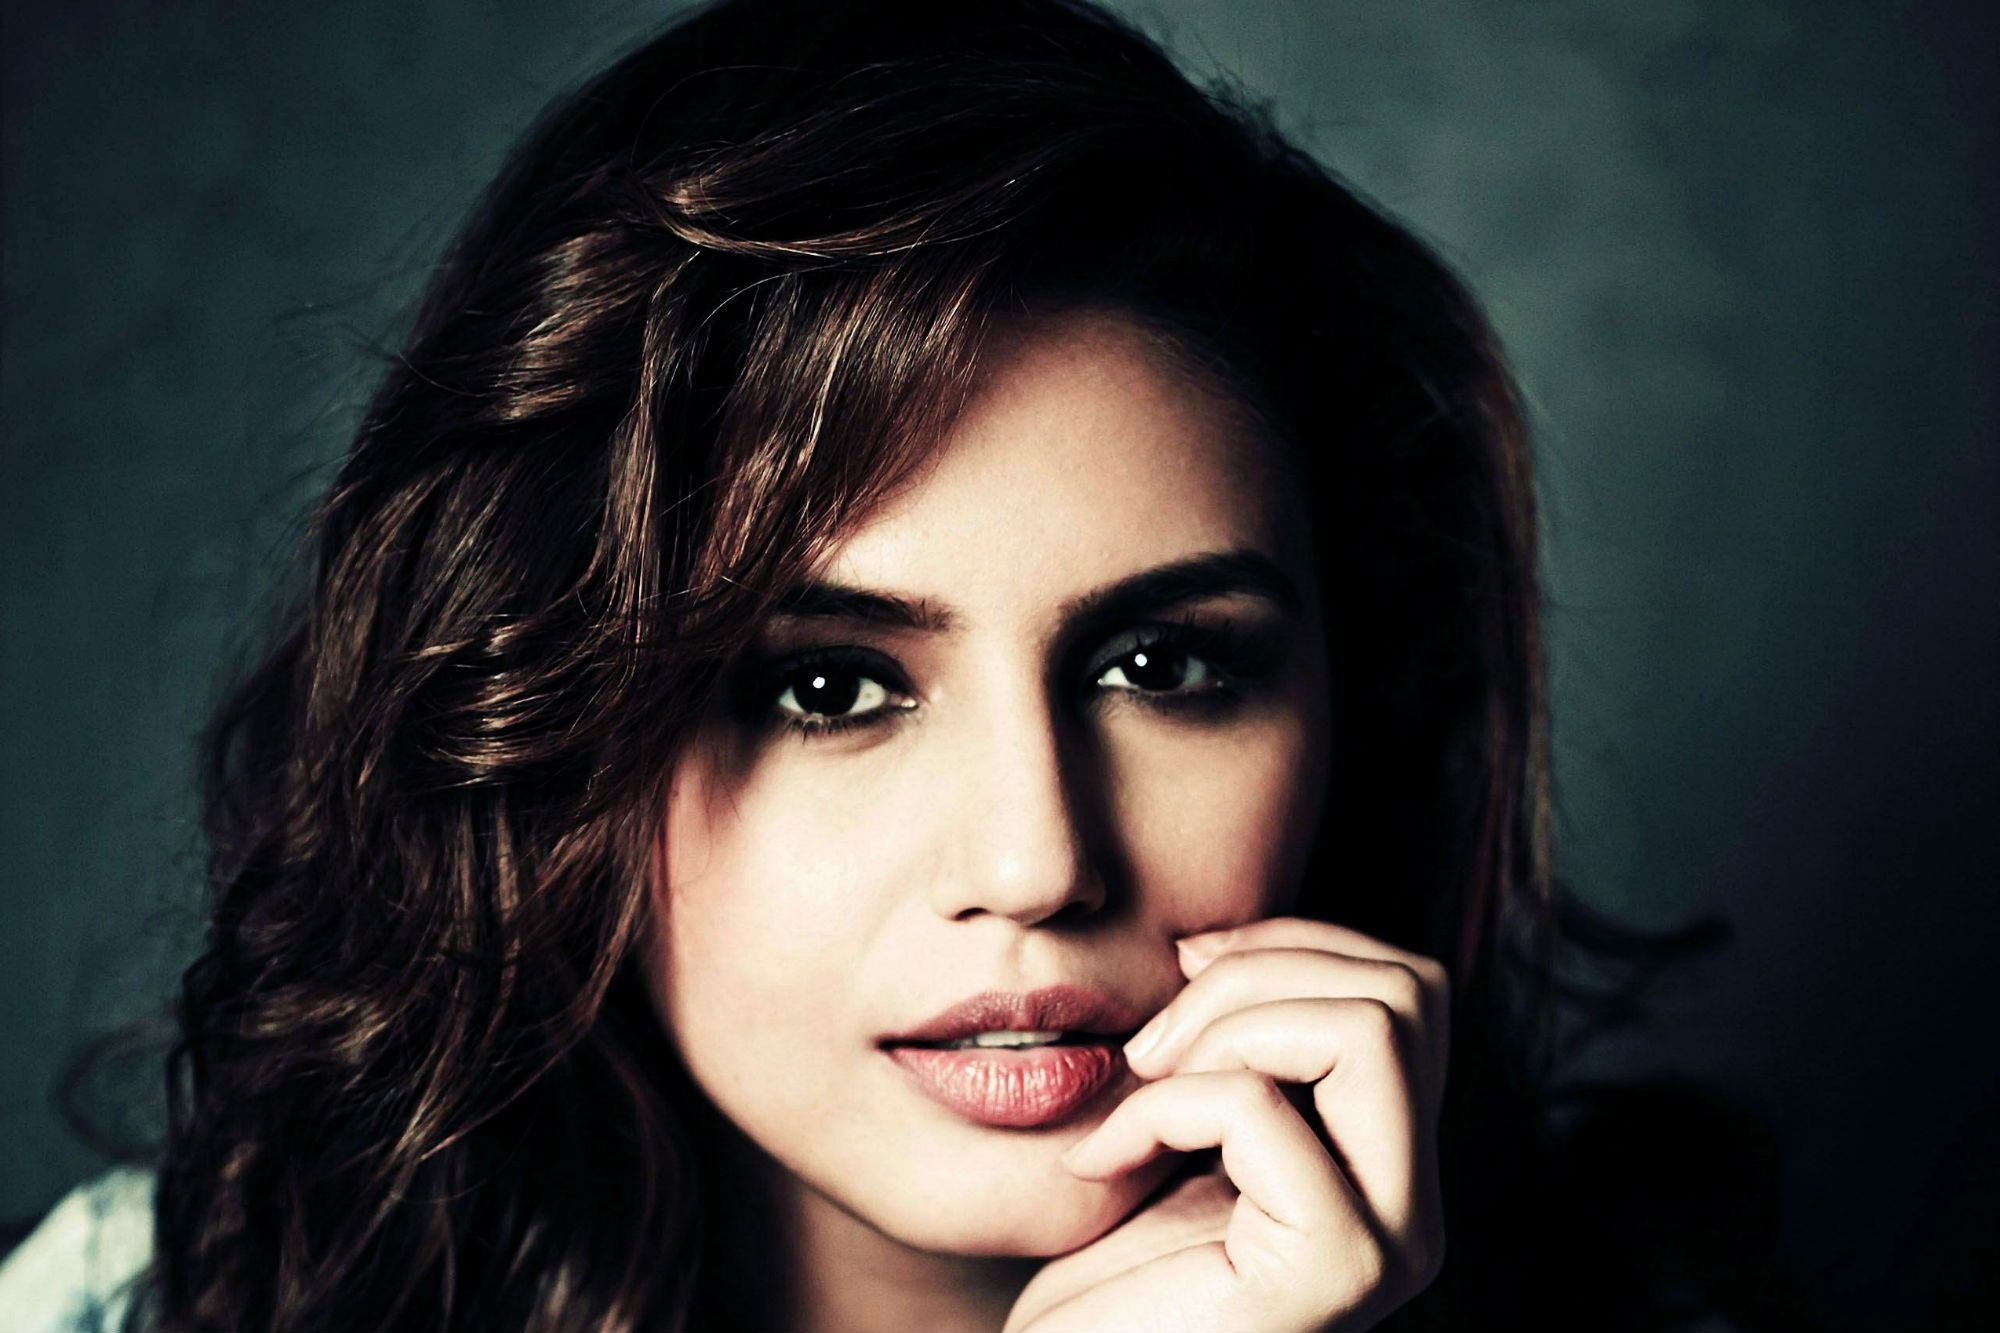 Desktop Huma Qureshi Beauiful Still Free Mobile Background Wallpaper Hd